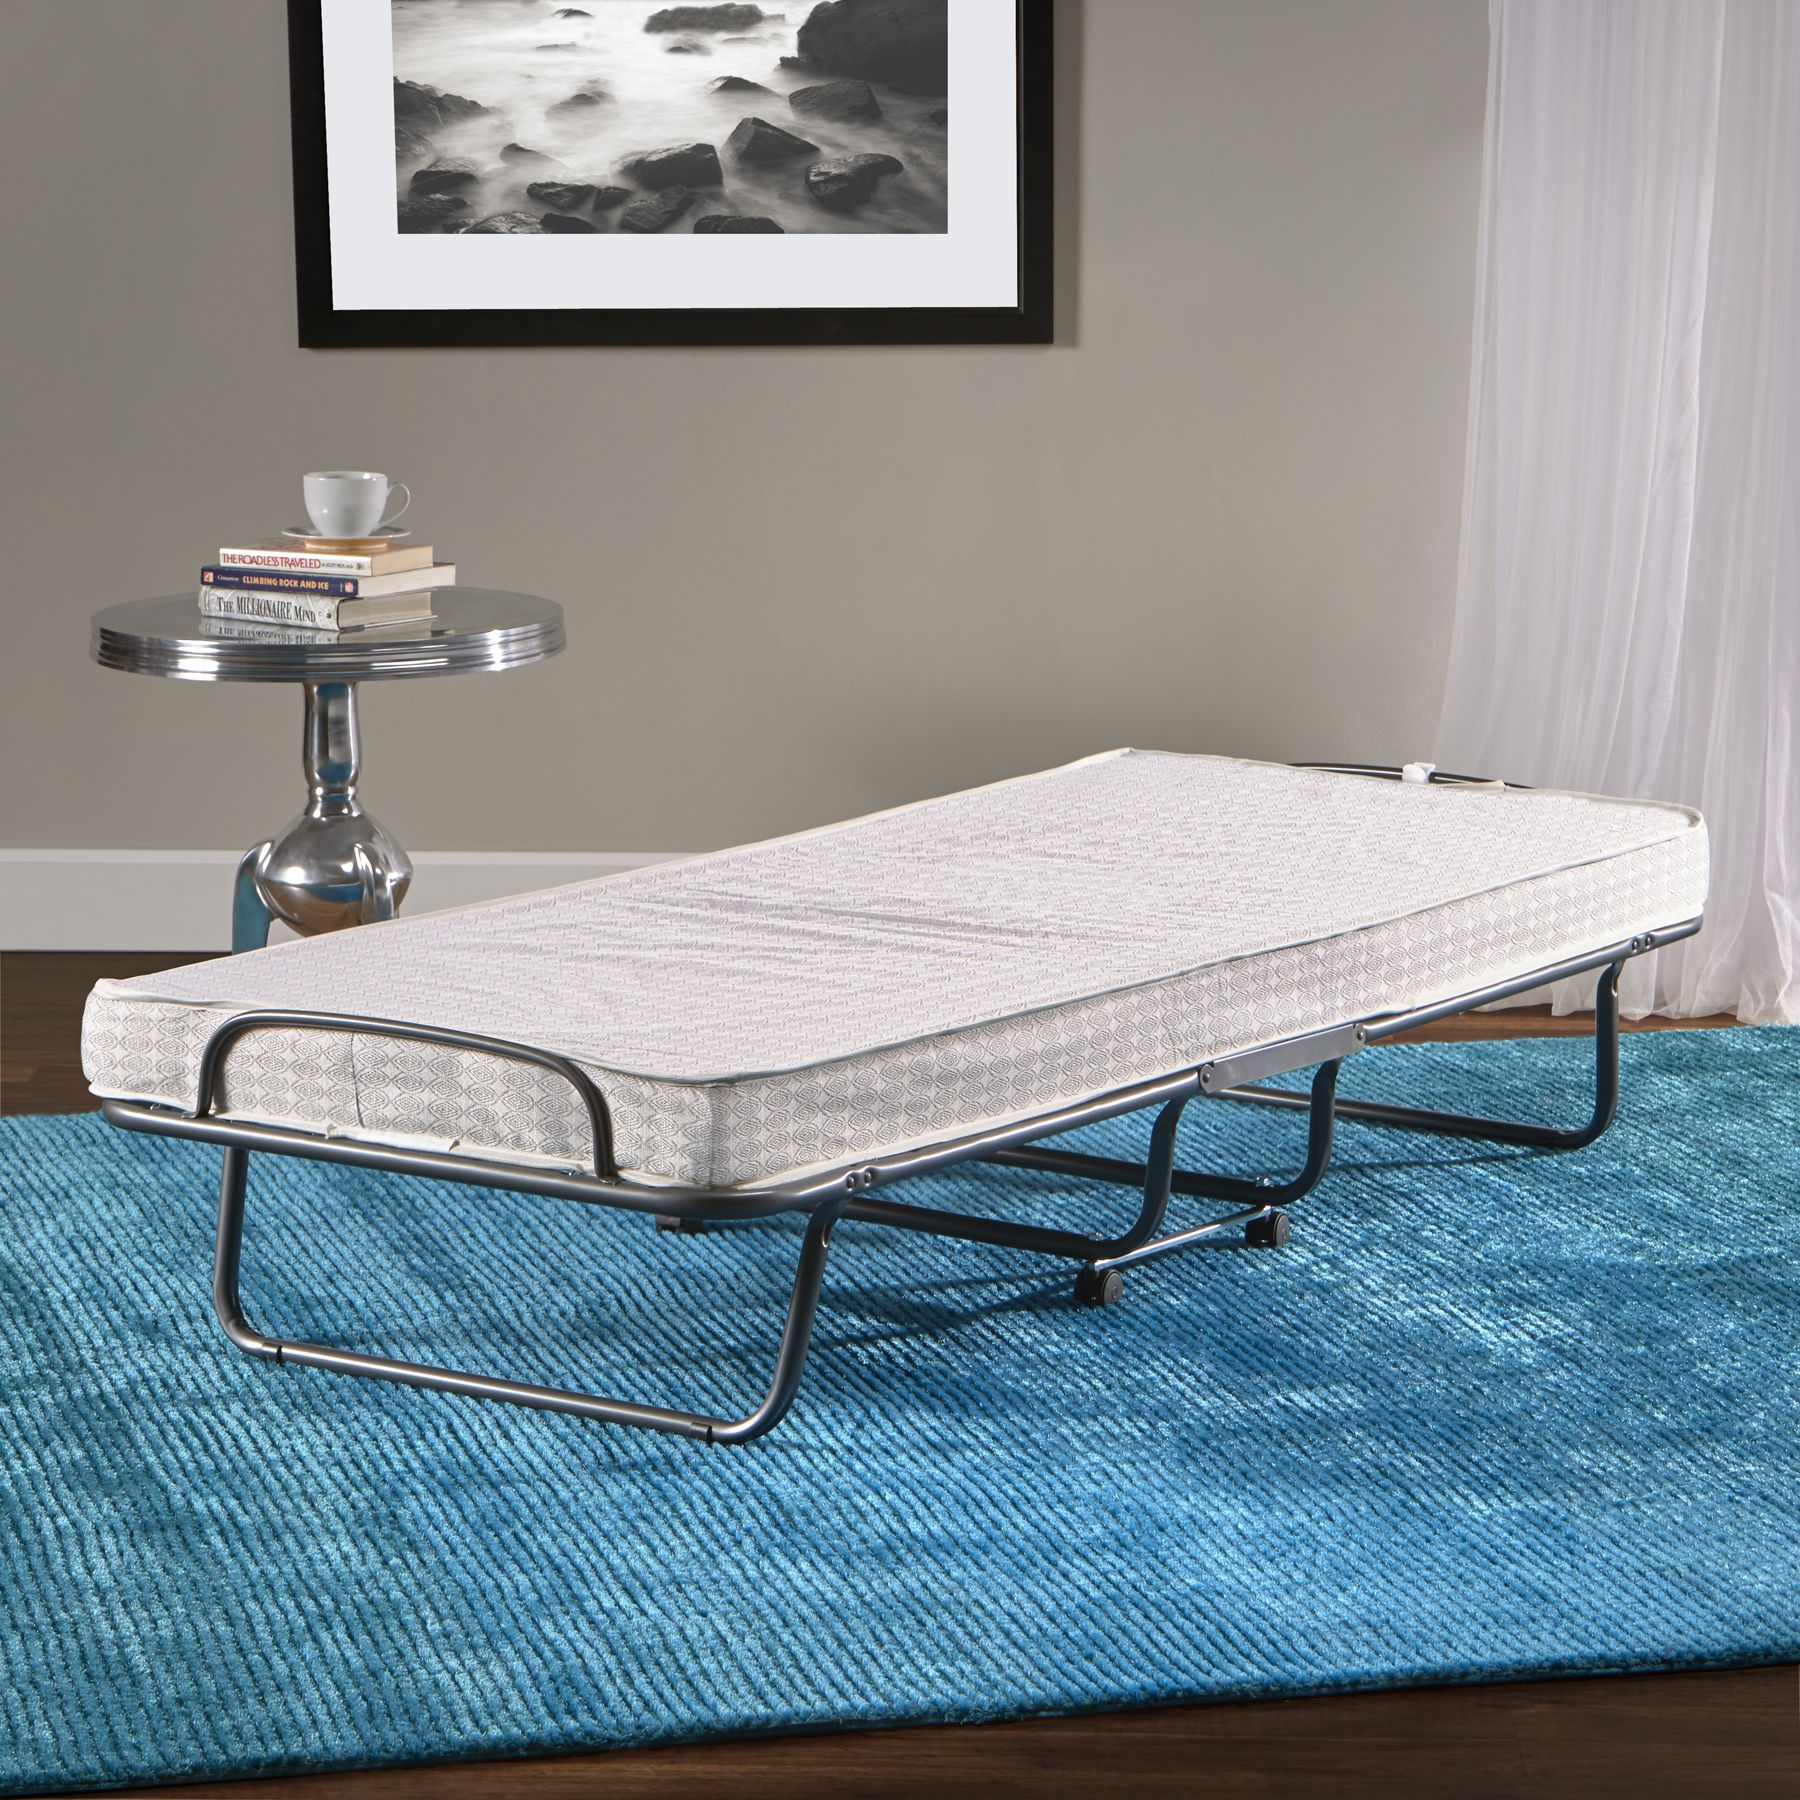 Adjustable rollaway guest bed by InnerSpace Luxury